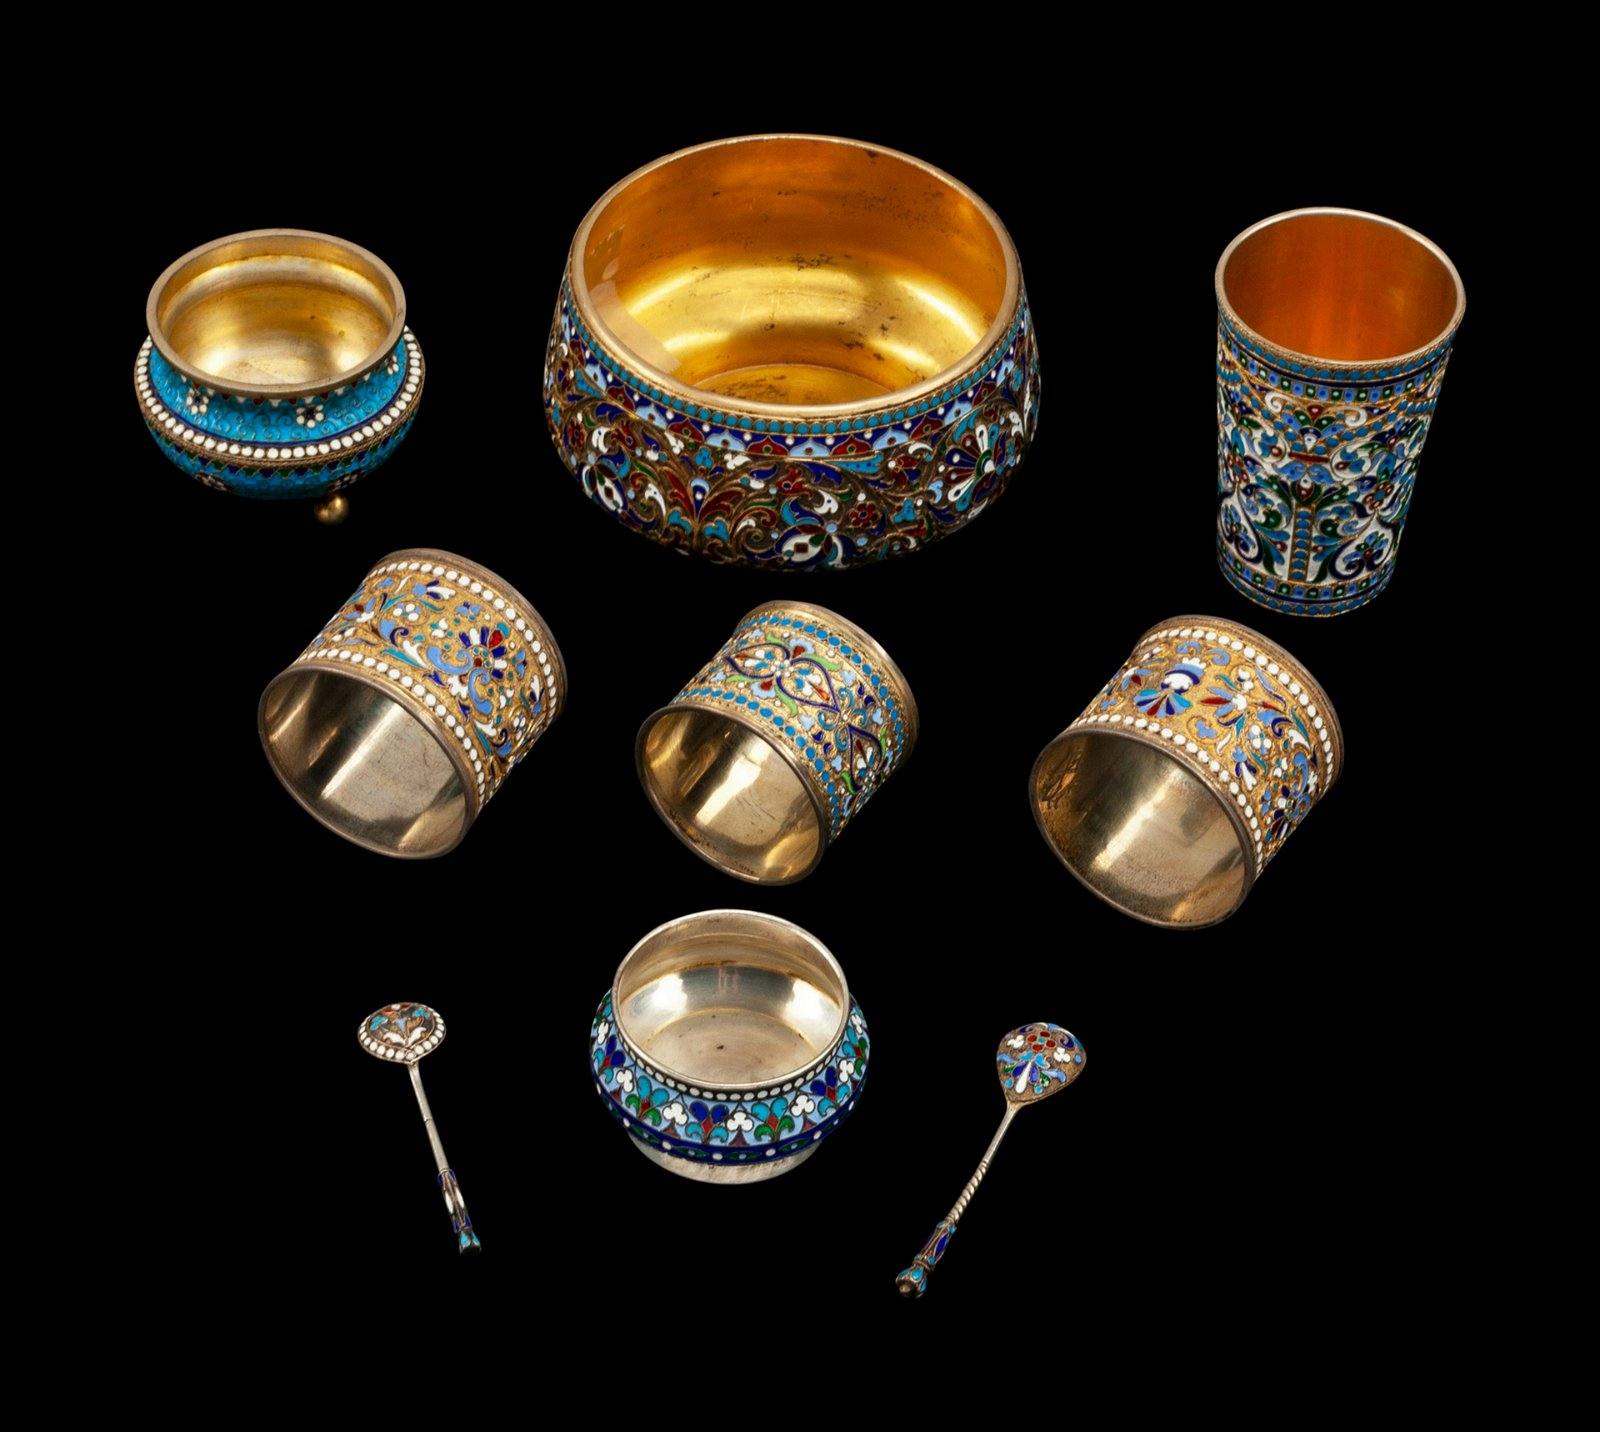 A Group of Seven Russian Enameled Silver Articles